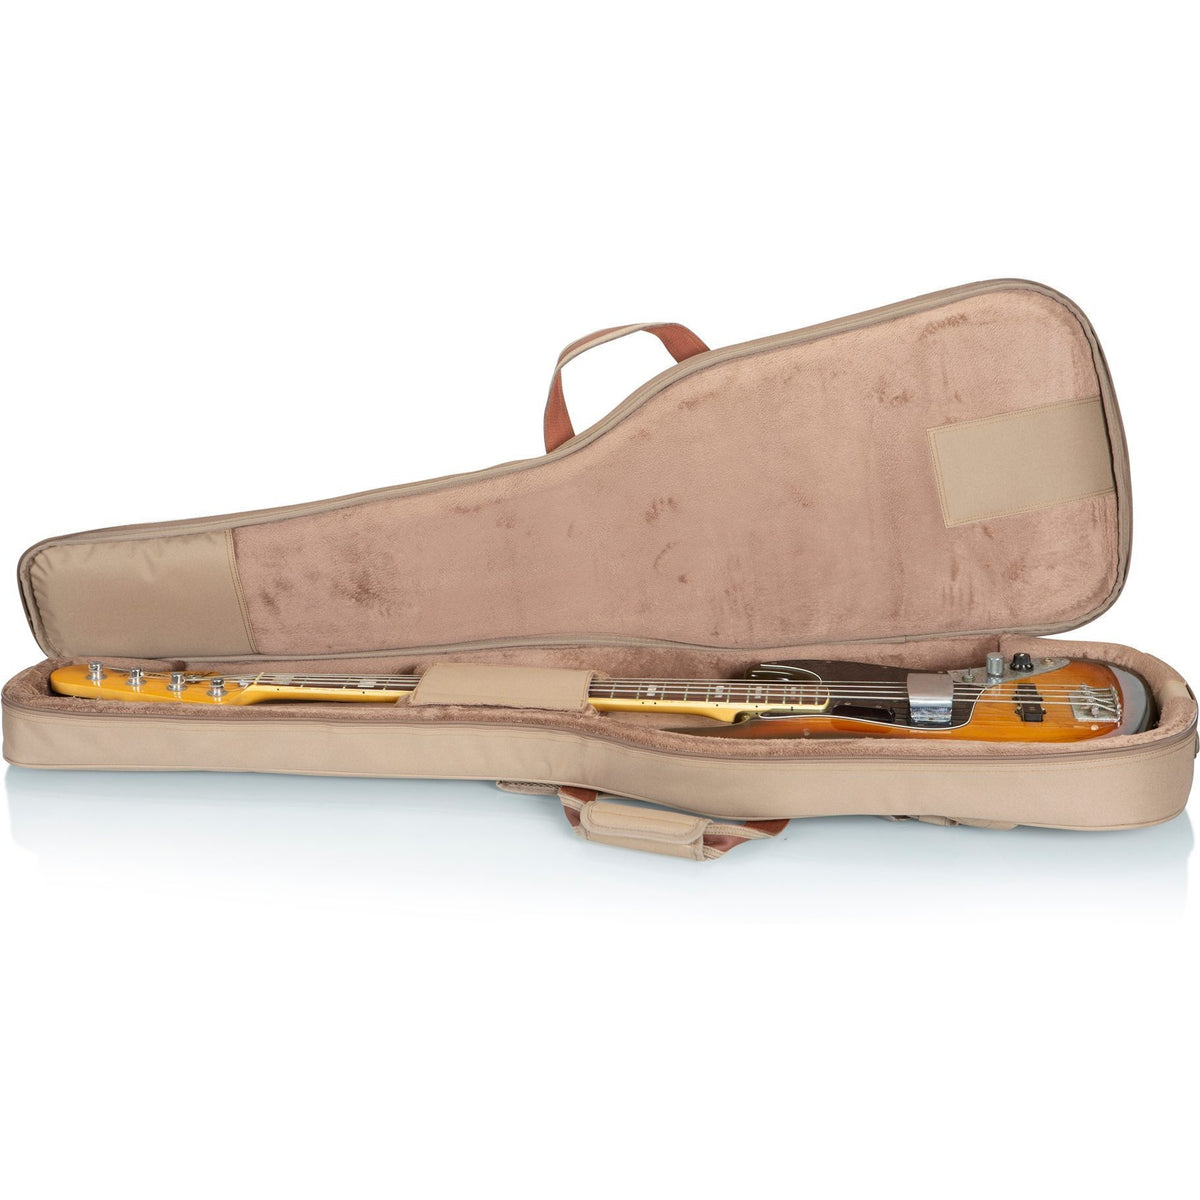 Levy's 200-Series Deluxe Electric Bass Gig Bag, Tan